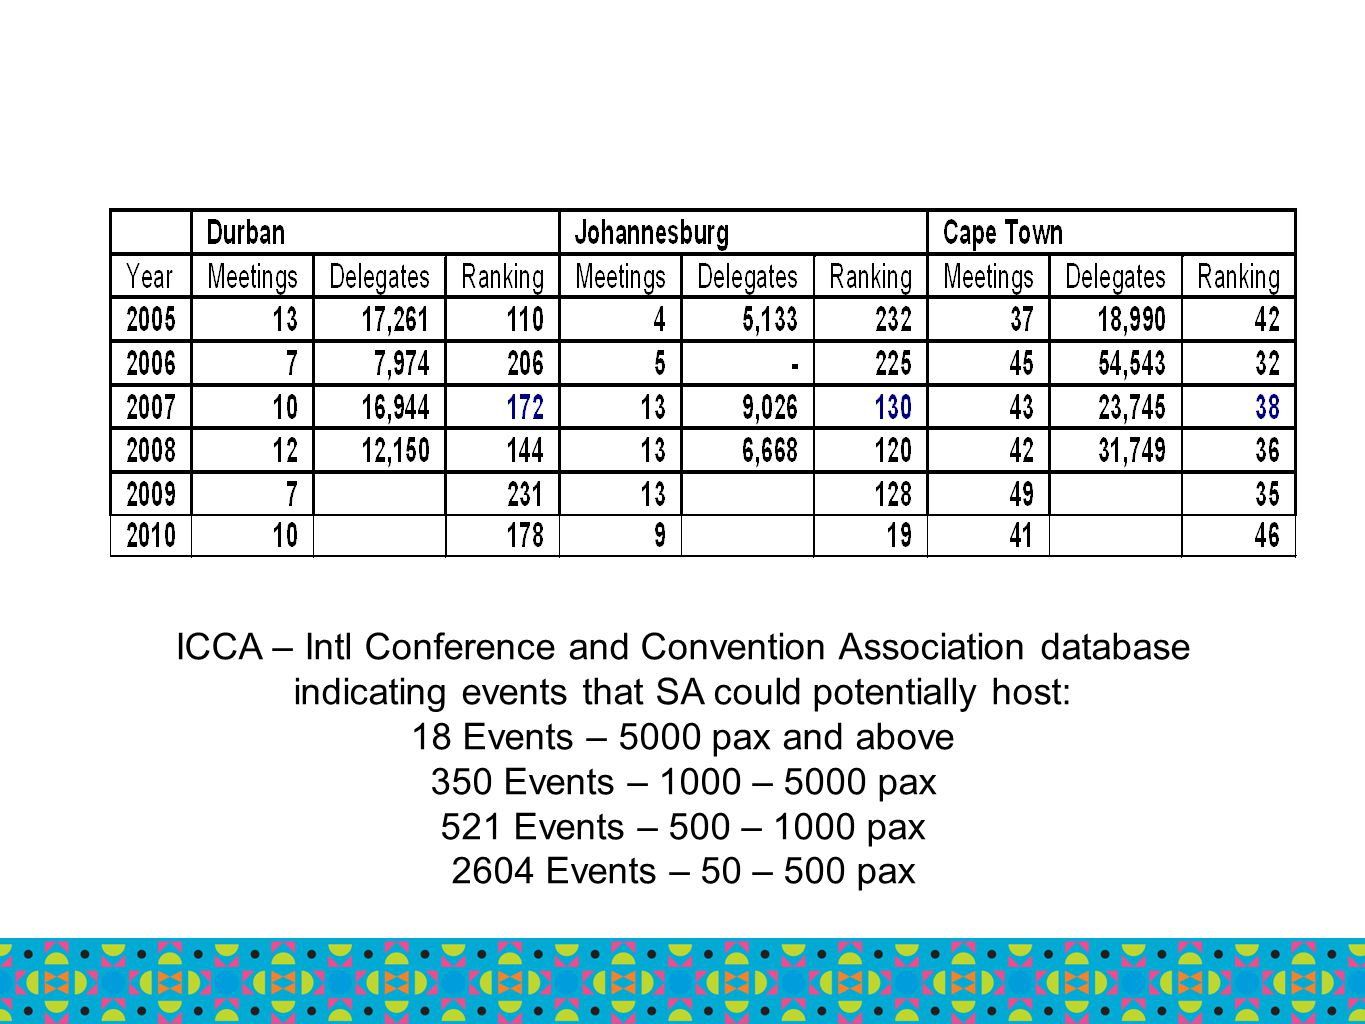 ICCA – Intl Conference and Convention Association database indicating events that SA could potentially host: 18 Events – 5000 pax and above 350 Events